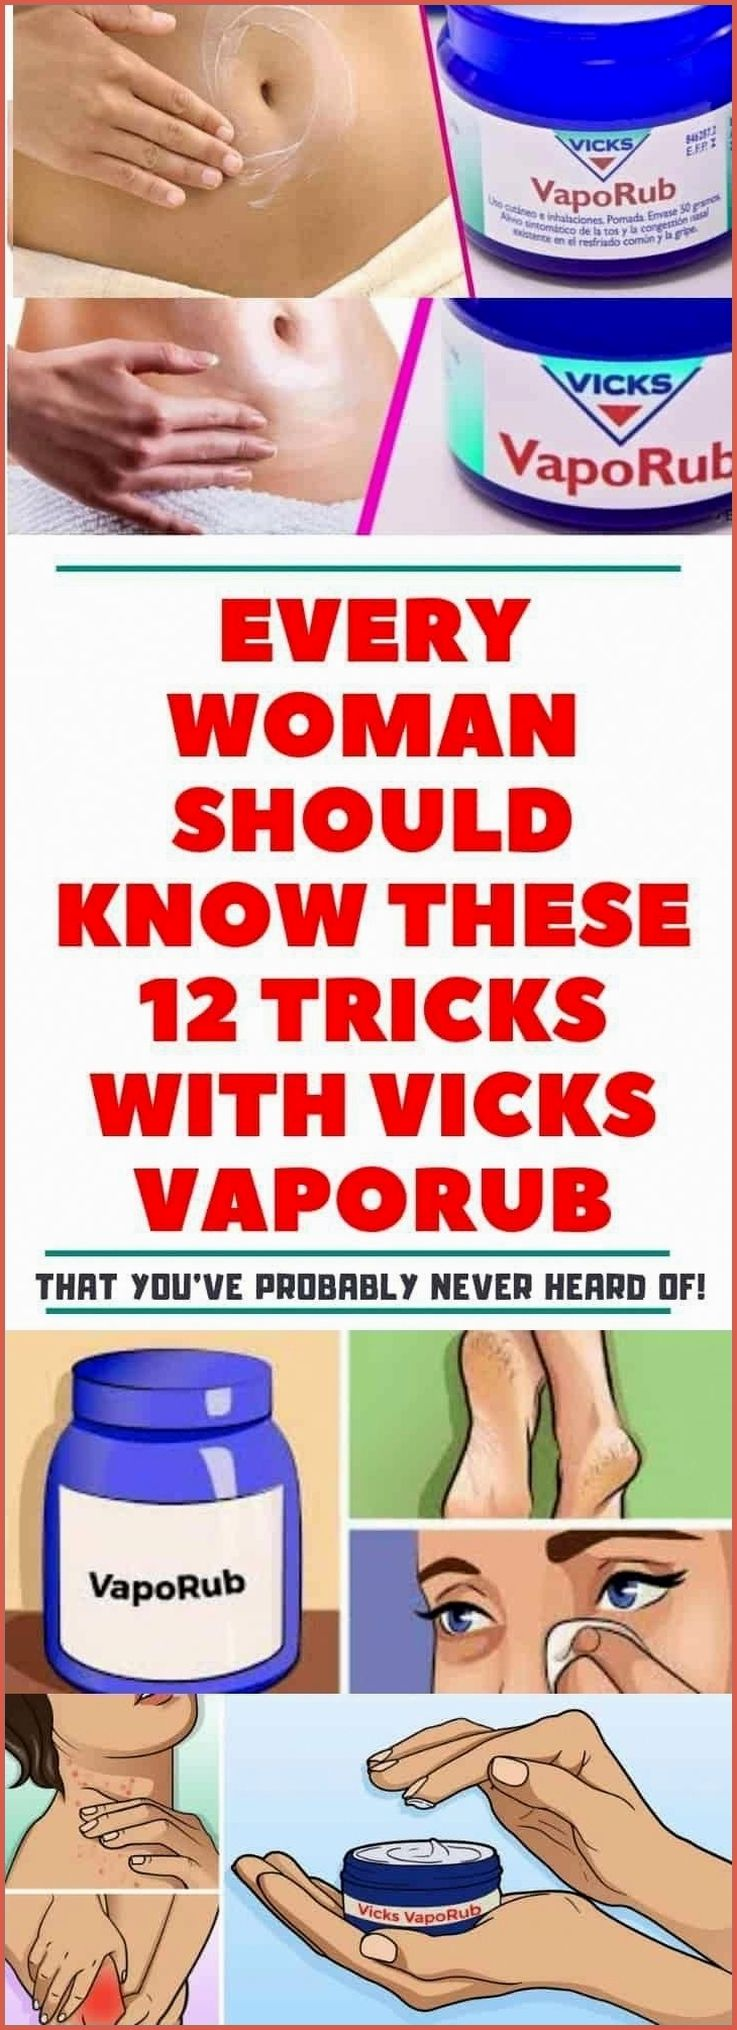 Every Woman Should Know These 12 Tricks With Vicks